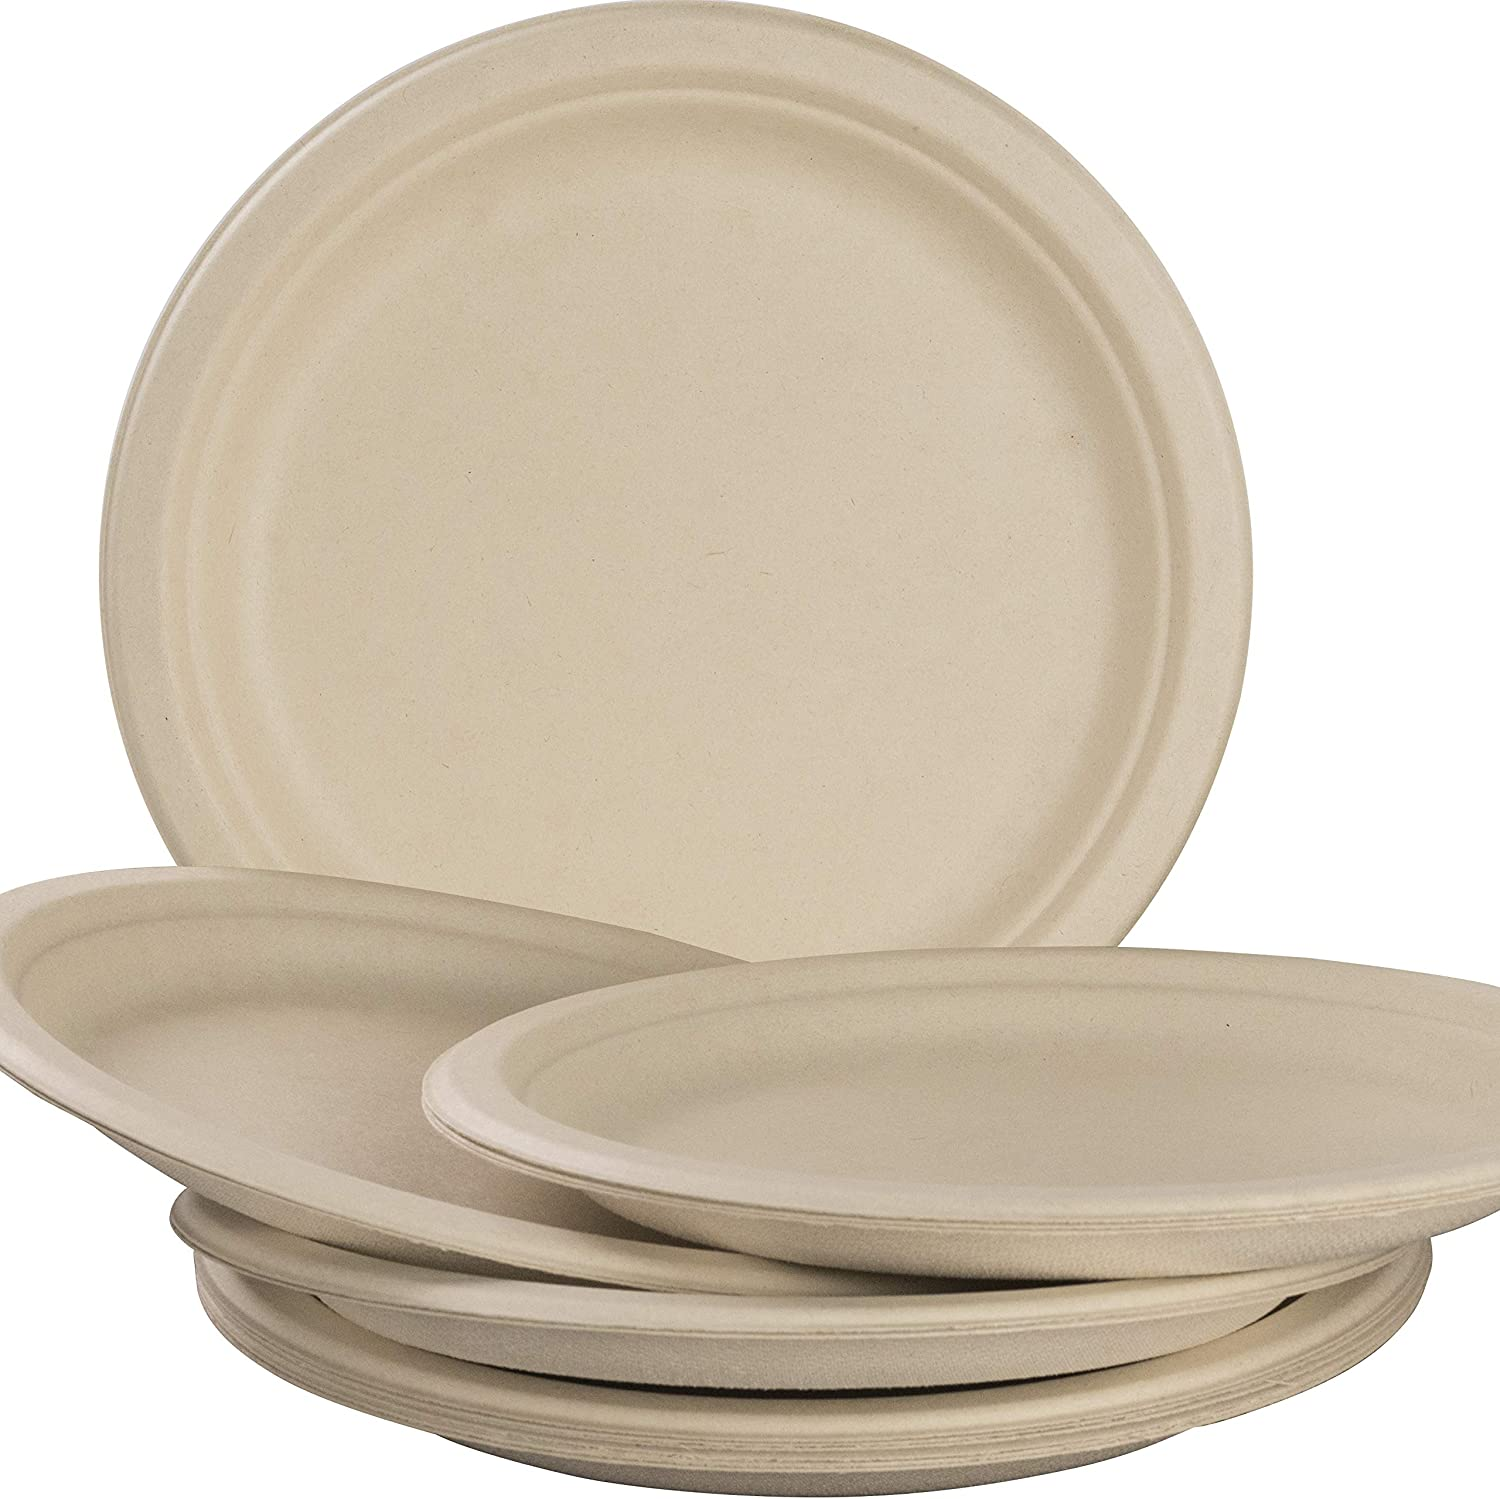 Biodegradable, Plant-Based, Tree Free, Disposable 9 Inch Plates 50 Pack. Sturdy, Gluten Free Wheatstraw Fiber is Certified Compostable, Eco-Friendly, Microwavable and Safe for Hot and Cold Foods